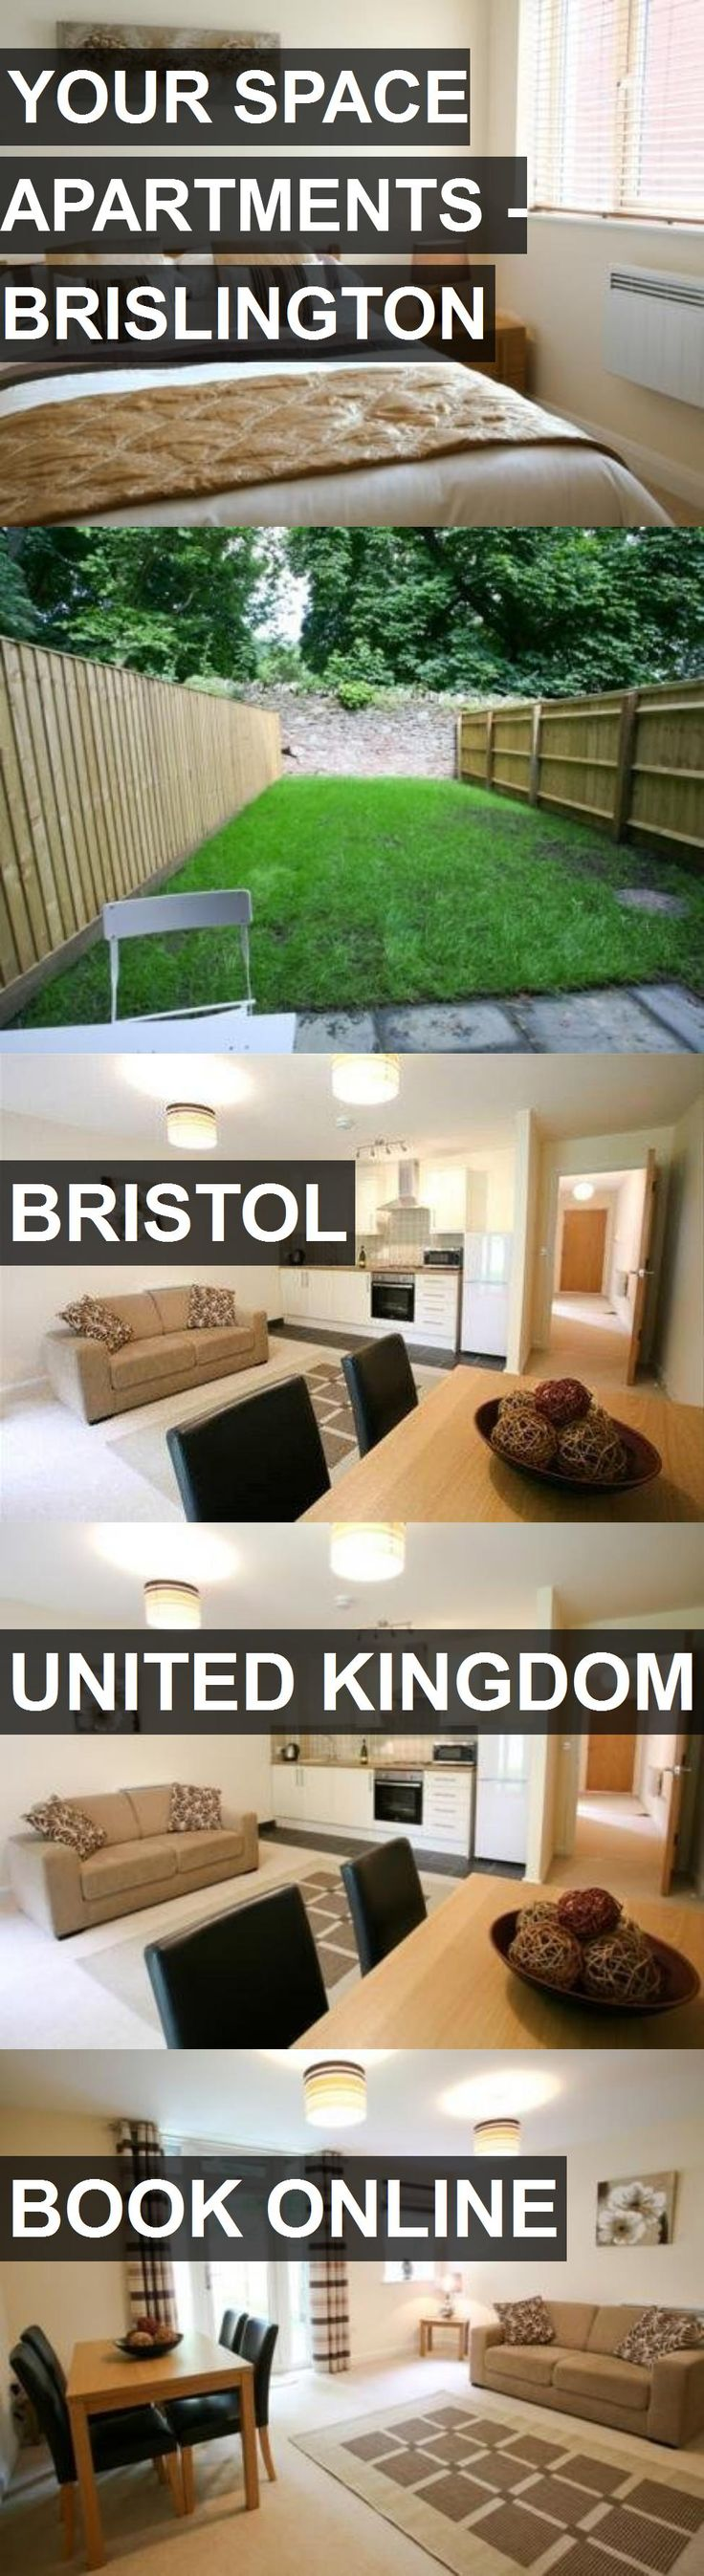 YOUR SPACE APARTMENTS - BRISLINGTON in Bristol, United Kingdom. For more information, photos, reviews and best prices please follow the link. #UnitedKingdom #Bristol #travel #vacation #apartment